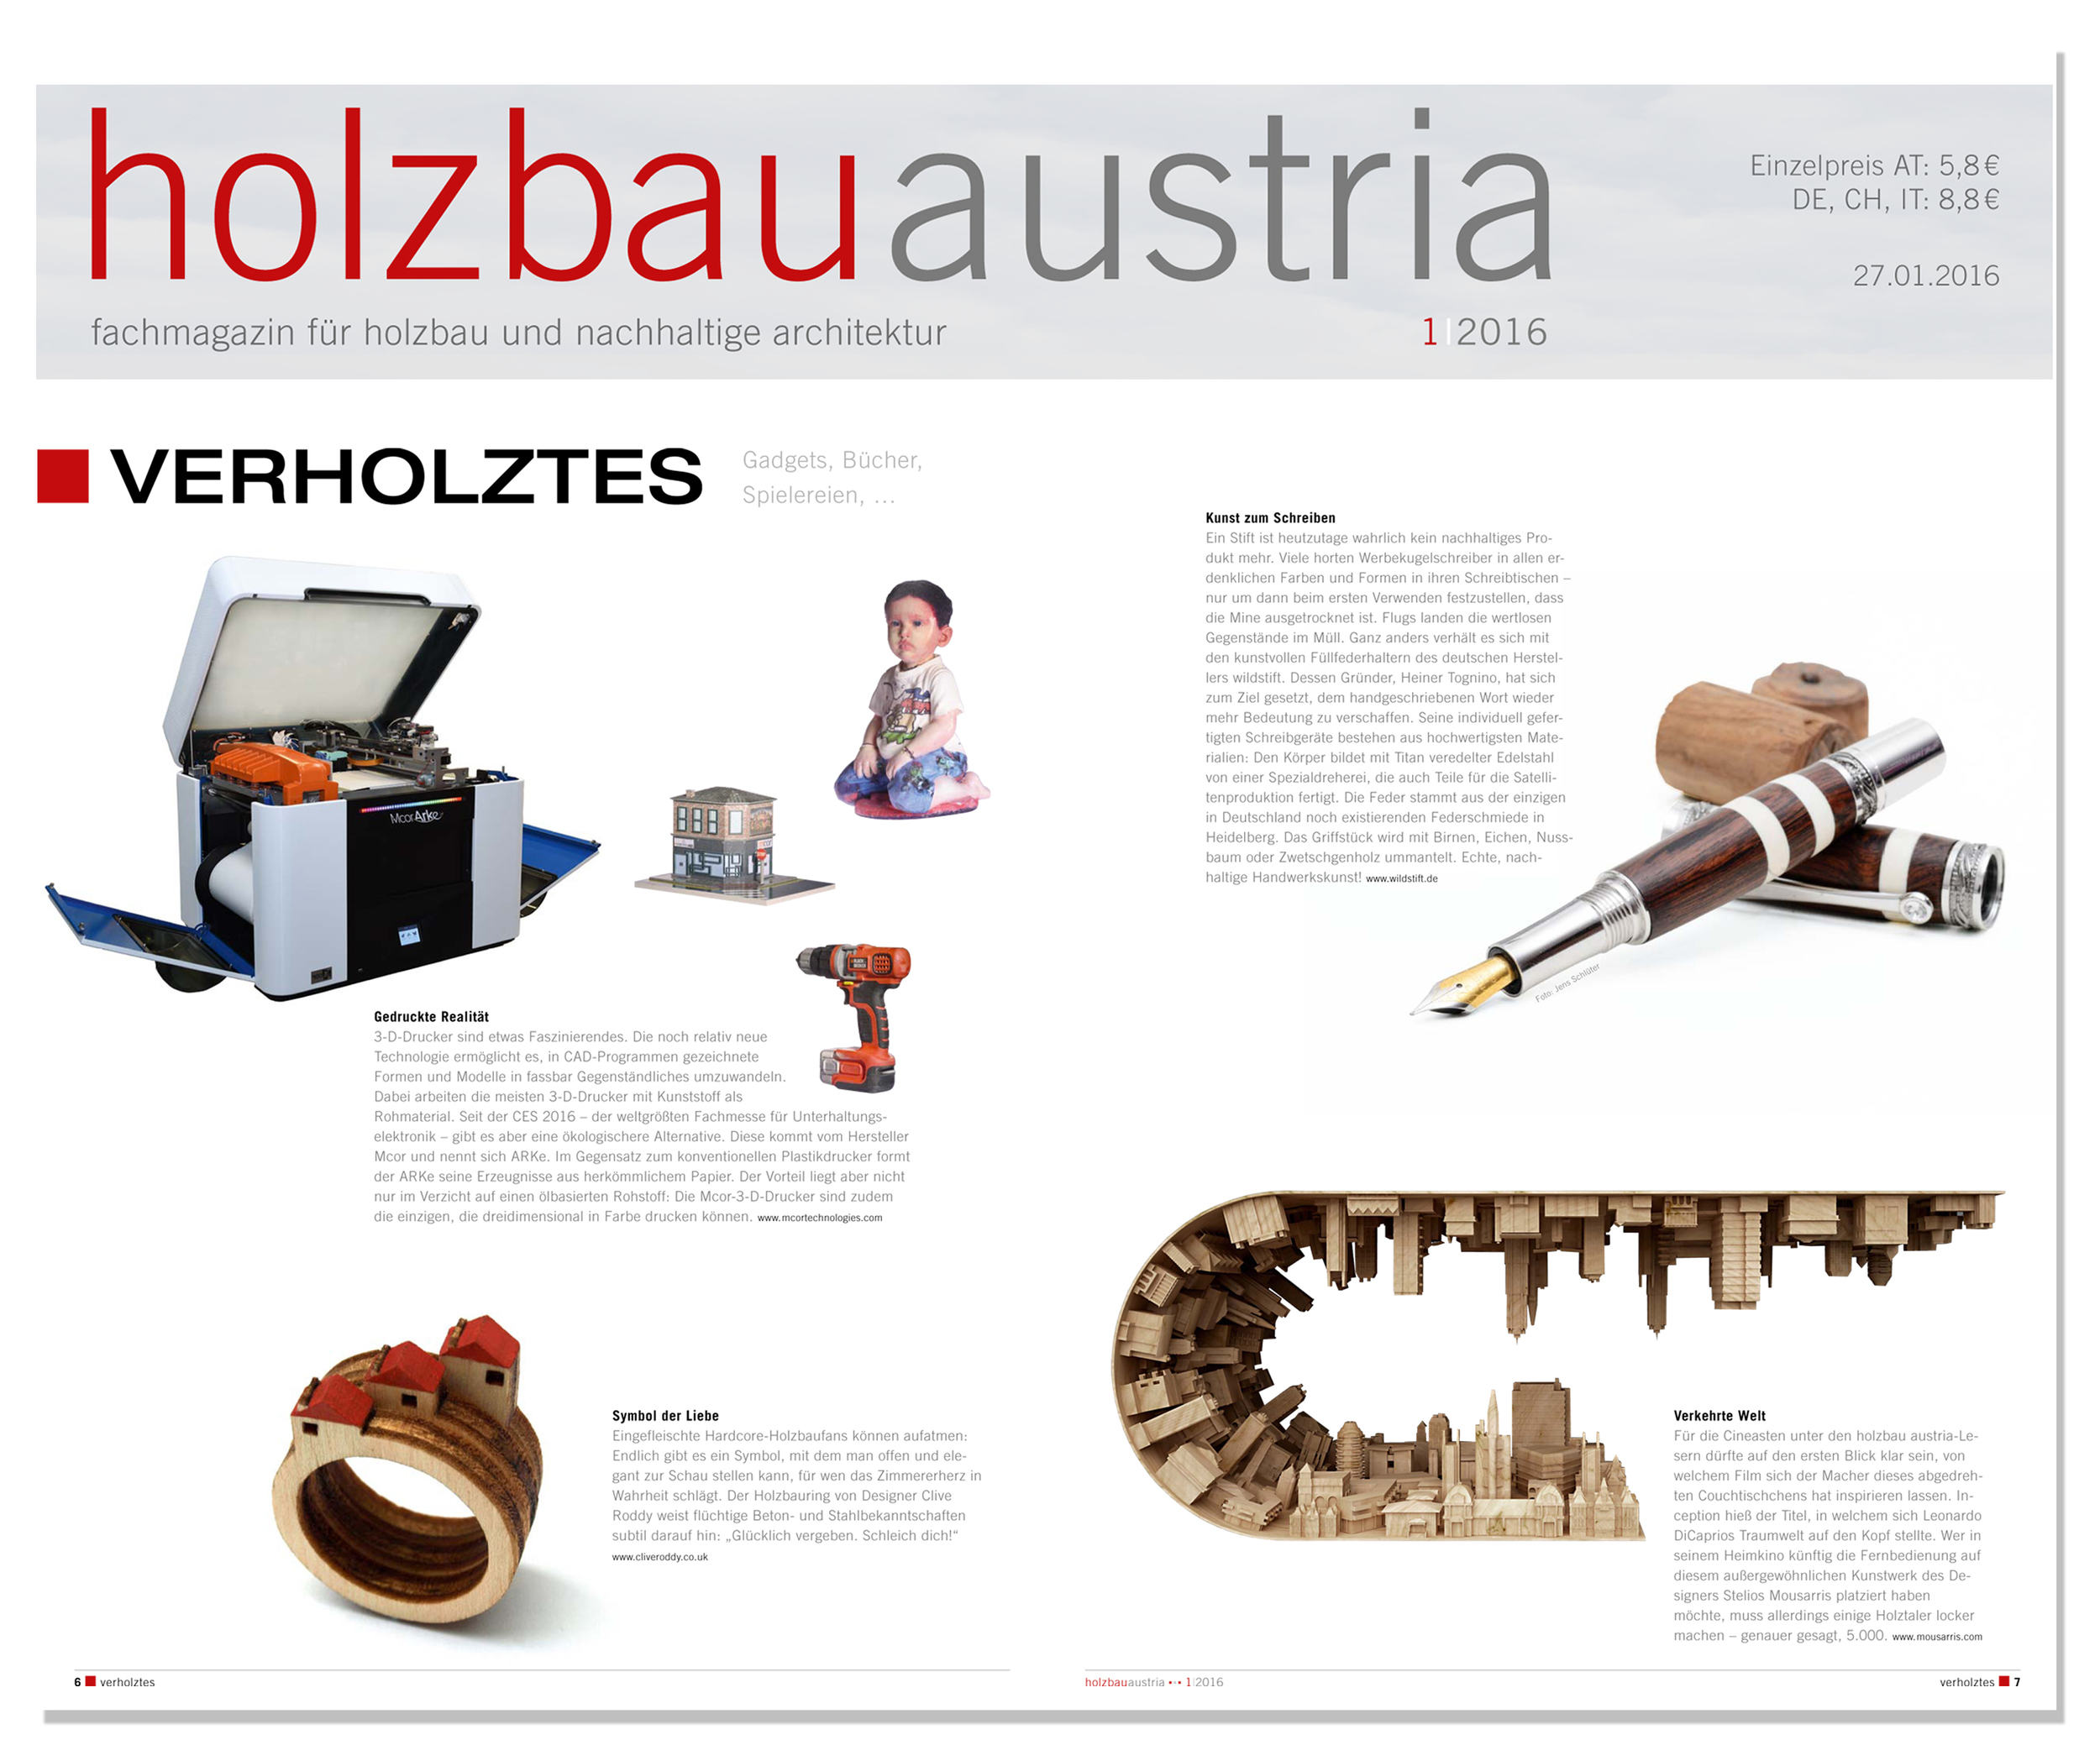 'House Rings' featured in  Austrian  architecture magazine 'H olzbauaustria' . Published in January 2016. Germany  .